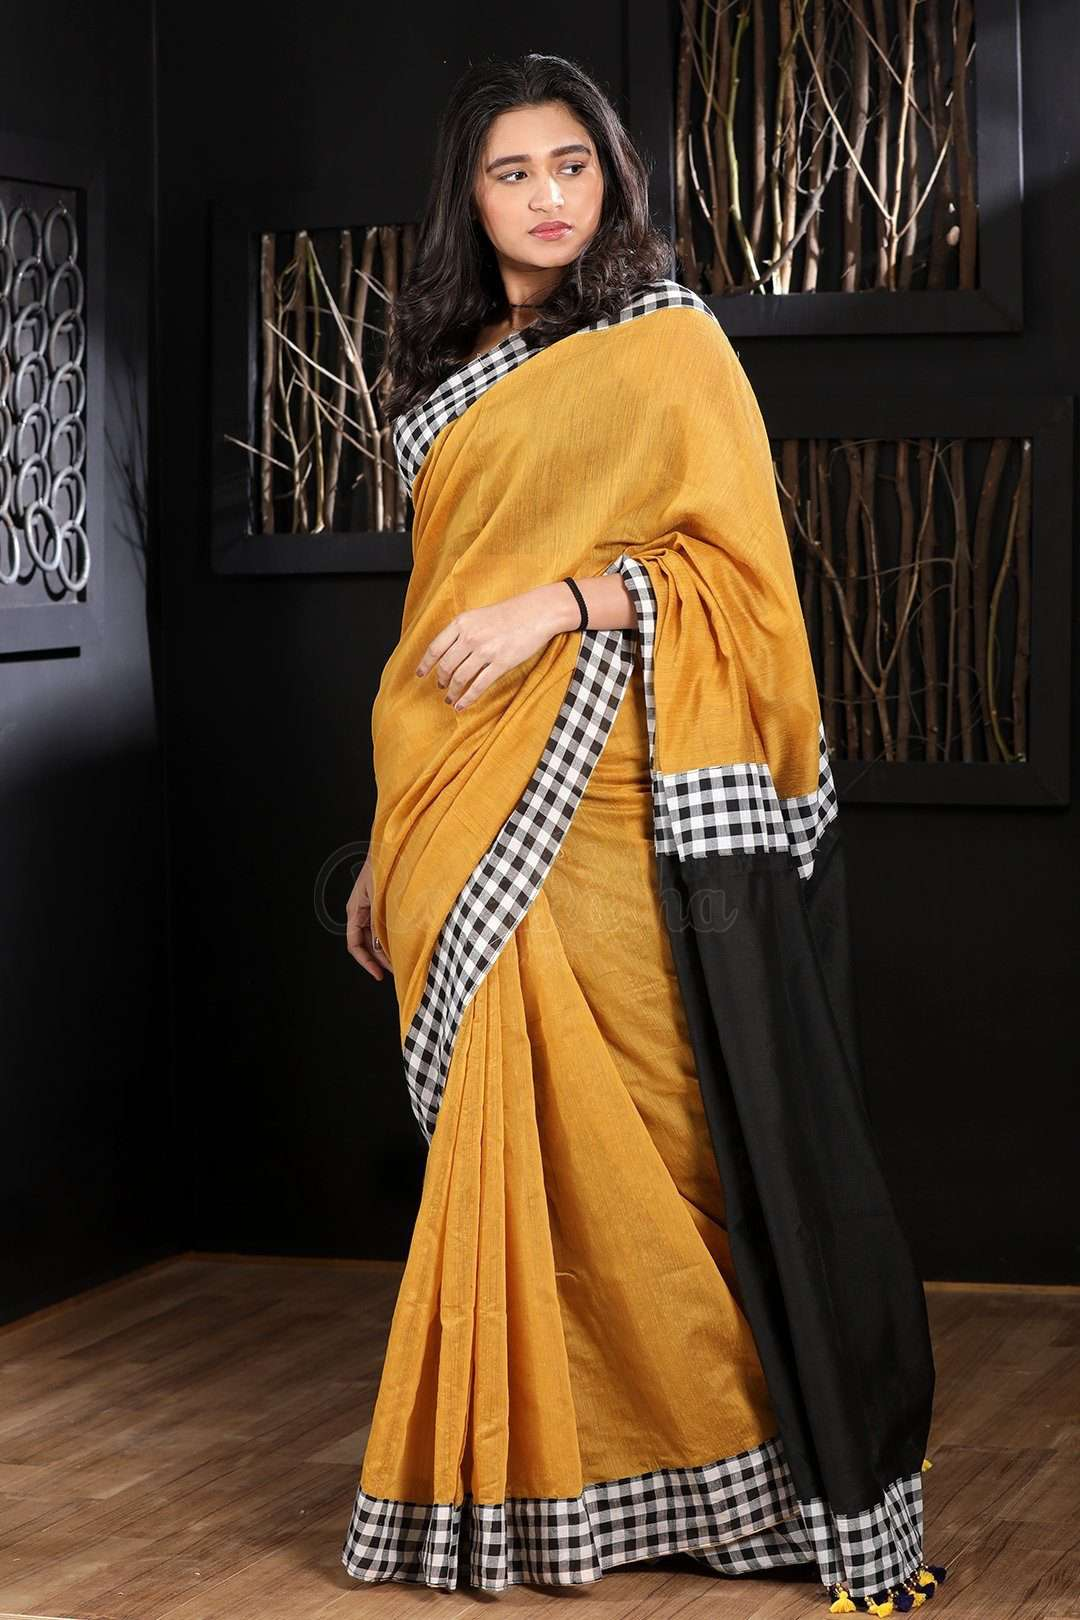 fcc5fdb38dc5a Yellow Blended Cotton Saree With Checkered Border - Roopkatha - A Story of  Art